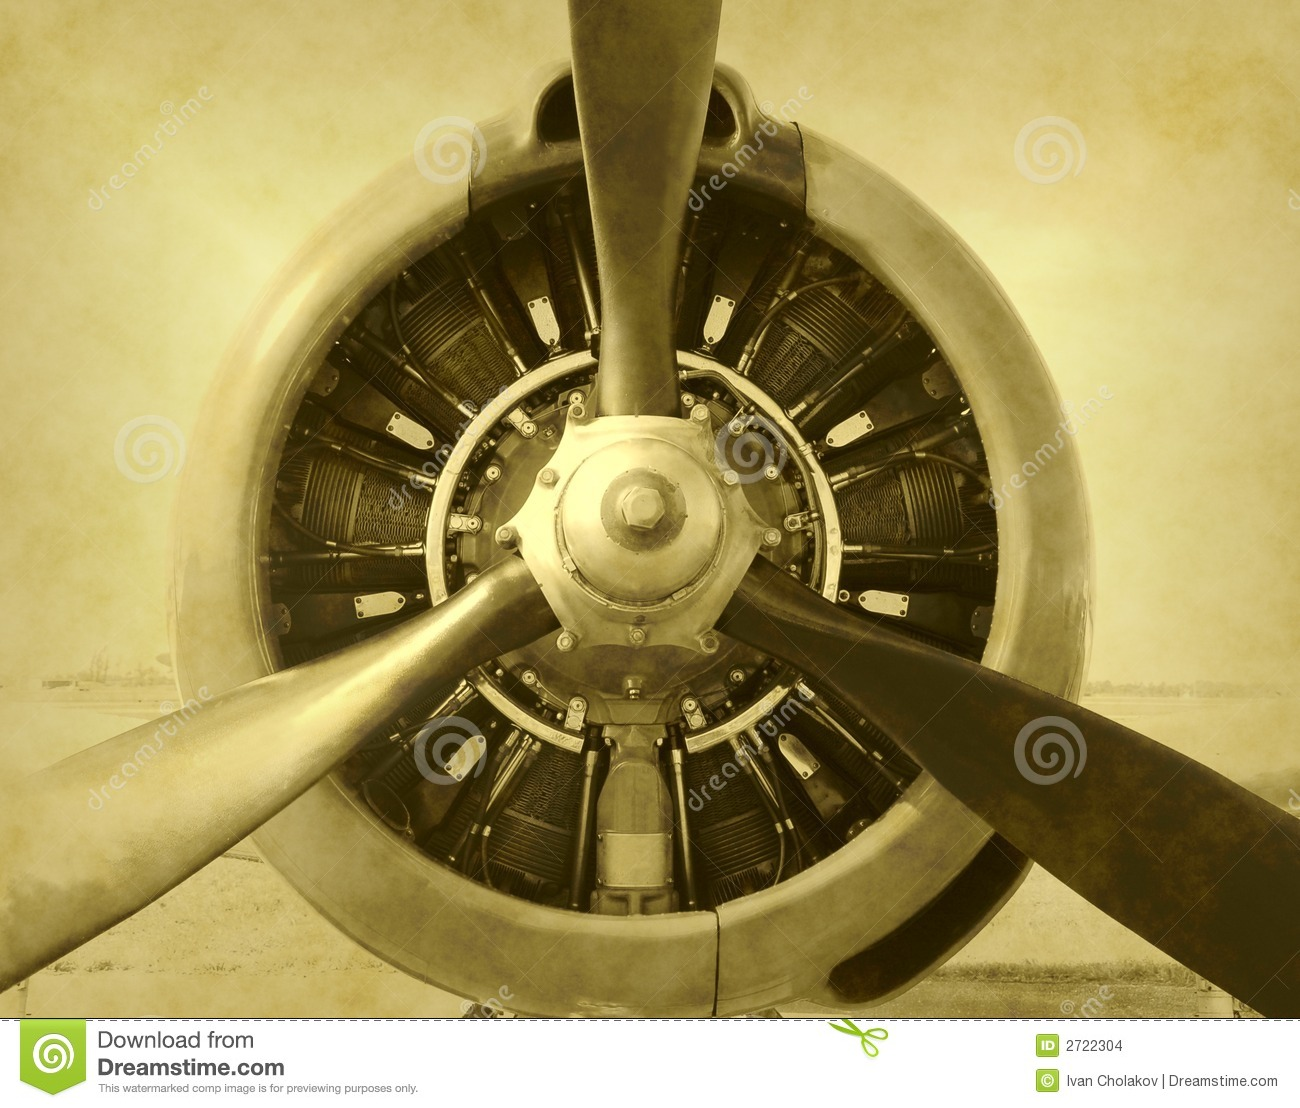 Artificially aged photo of airplane engne and propeller.